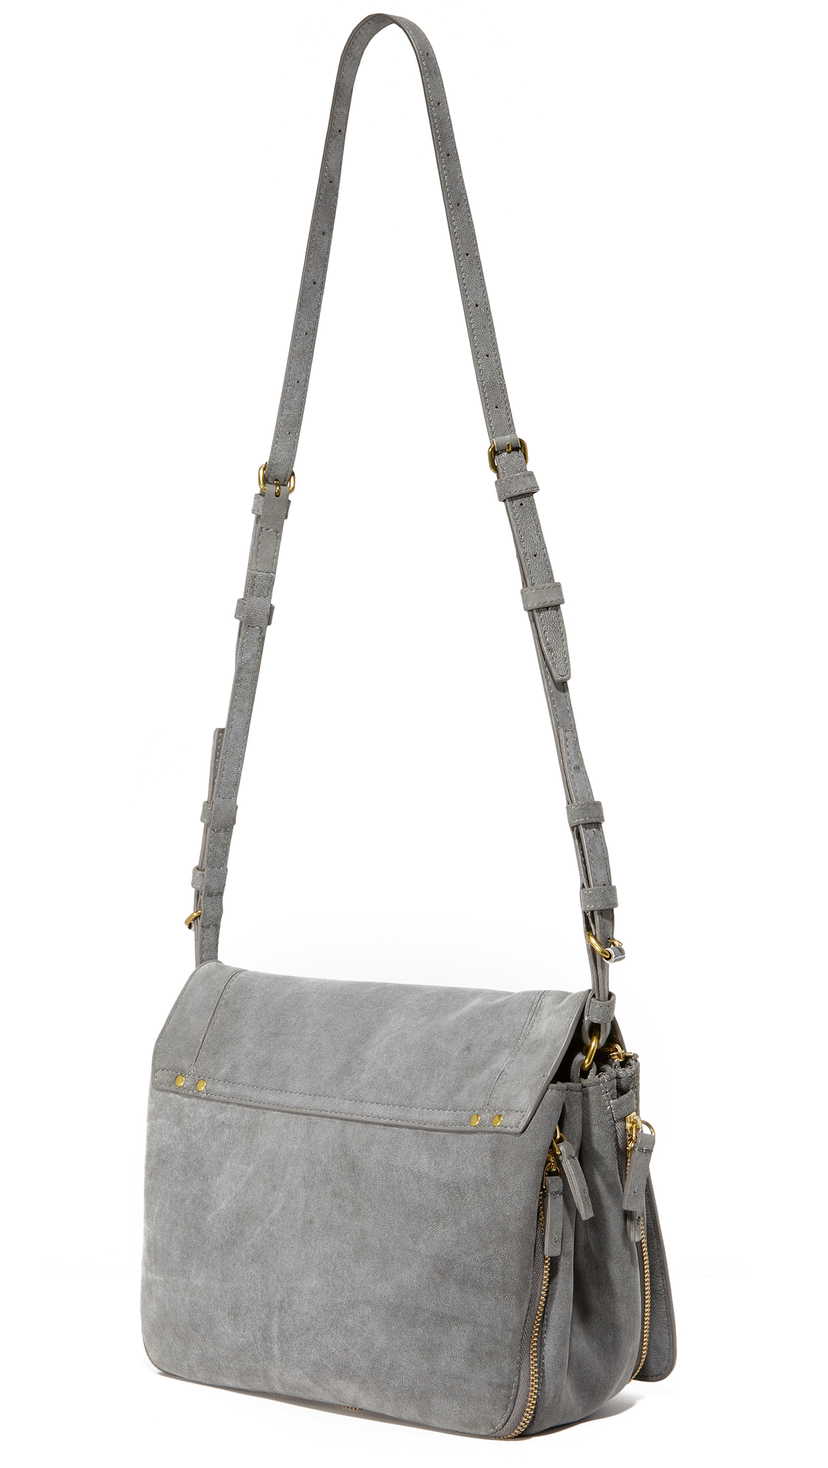 Jerome Dreyfuss Igor Ardoise Bag (originally $645.00) Bags Sale